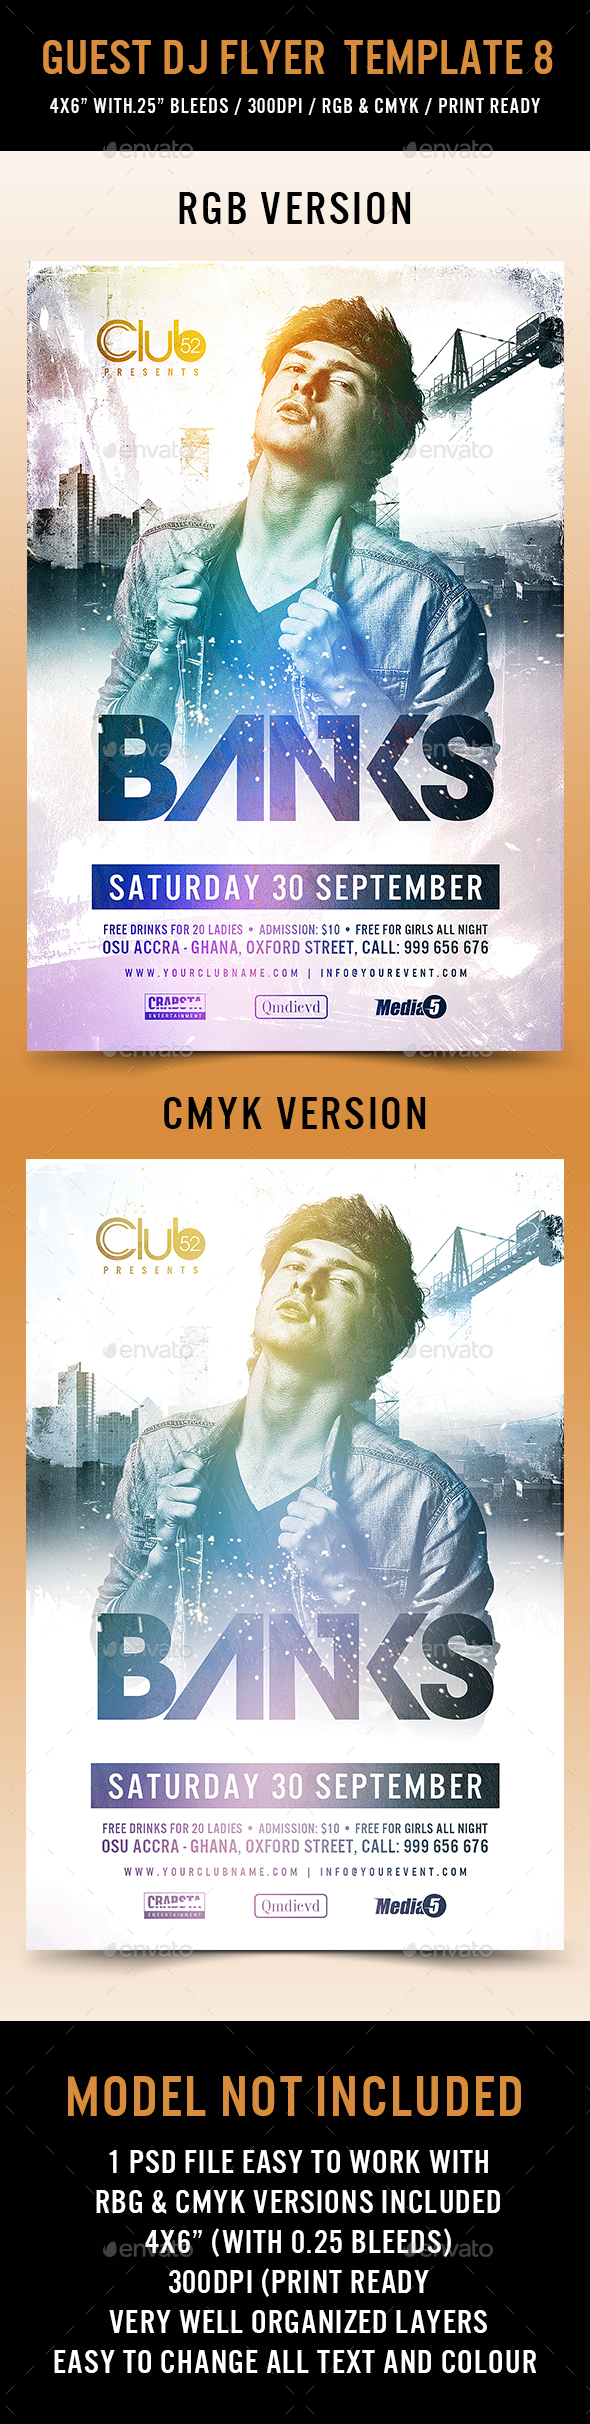 Guest Dj Flyer Template 8 - Clubs & Parties Events